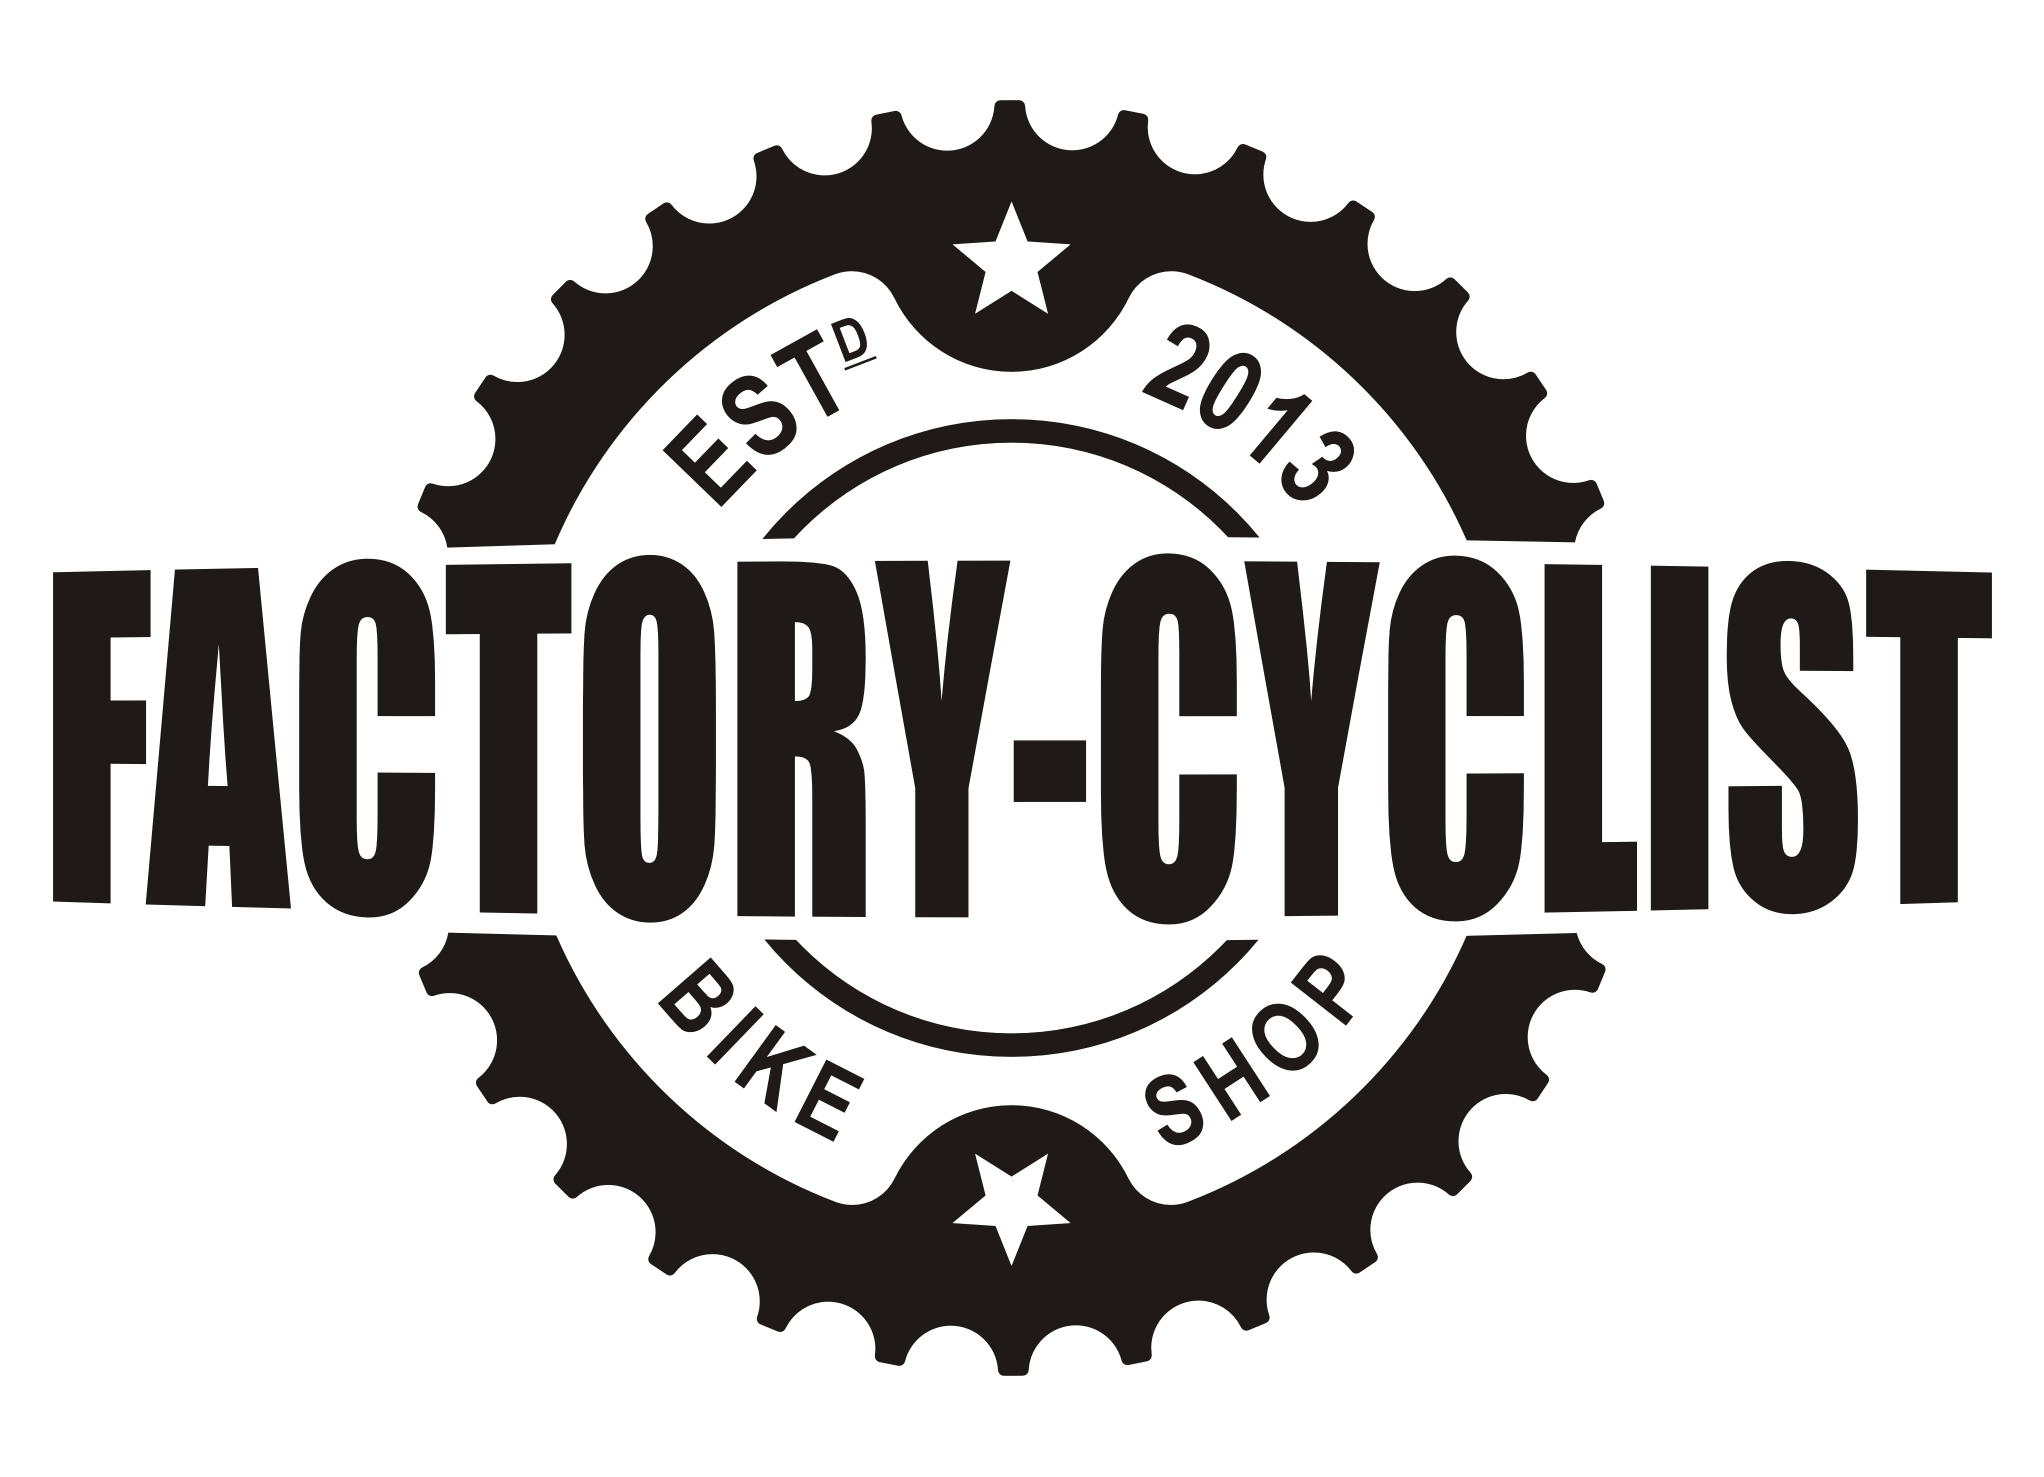 factory-cyclist logo 2